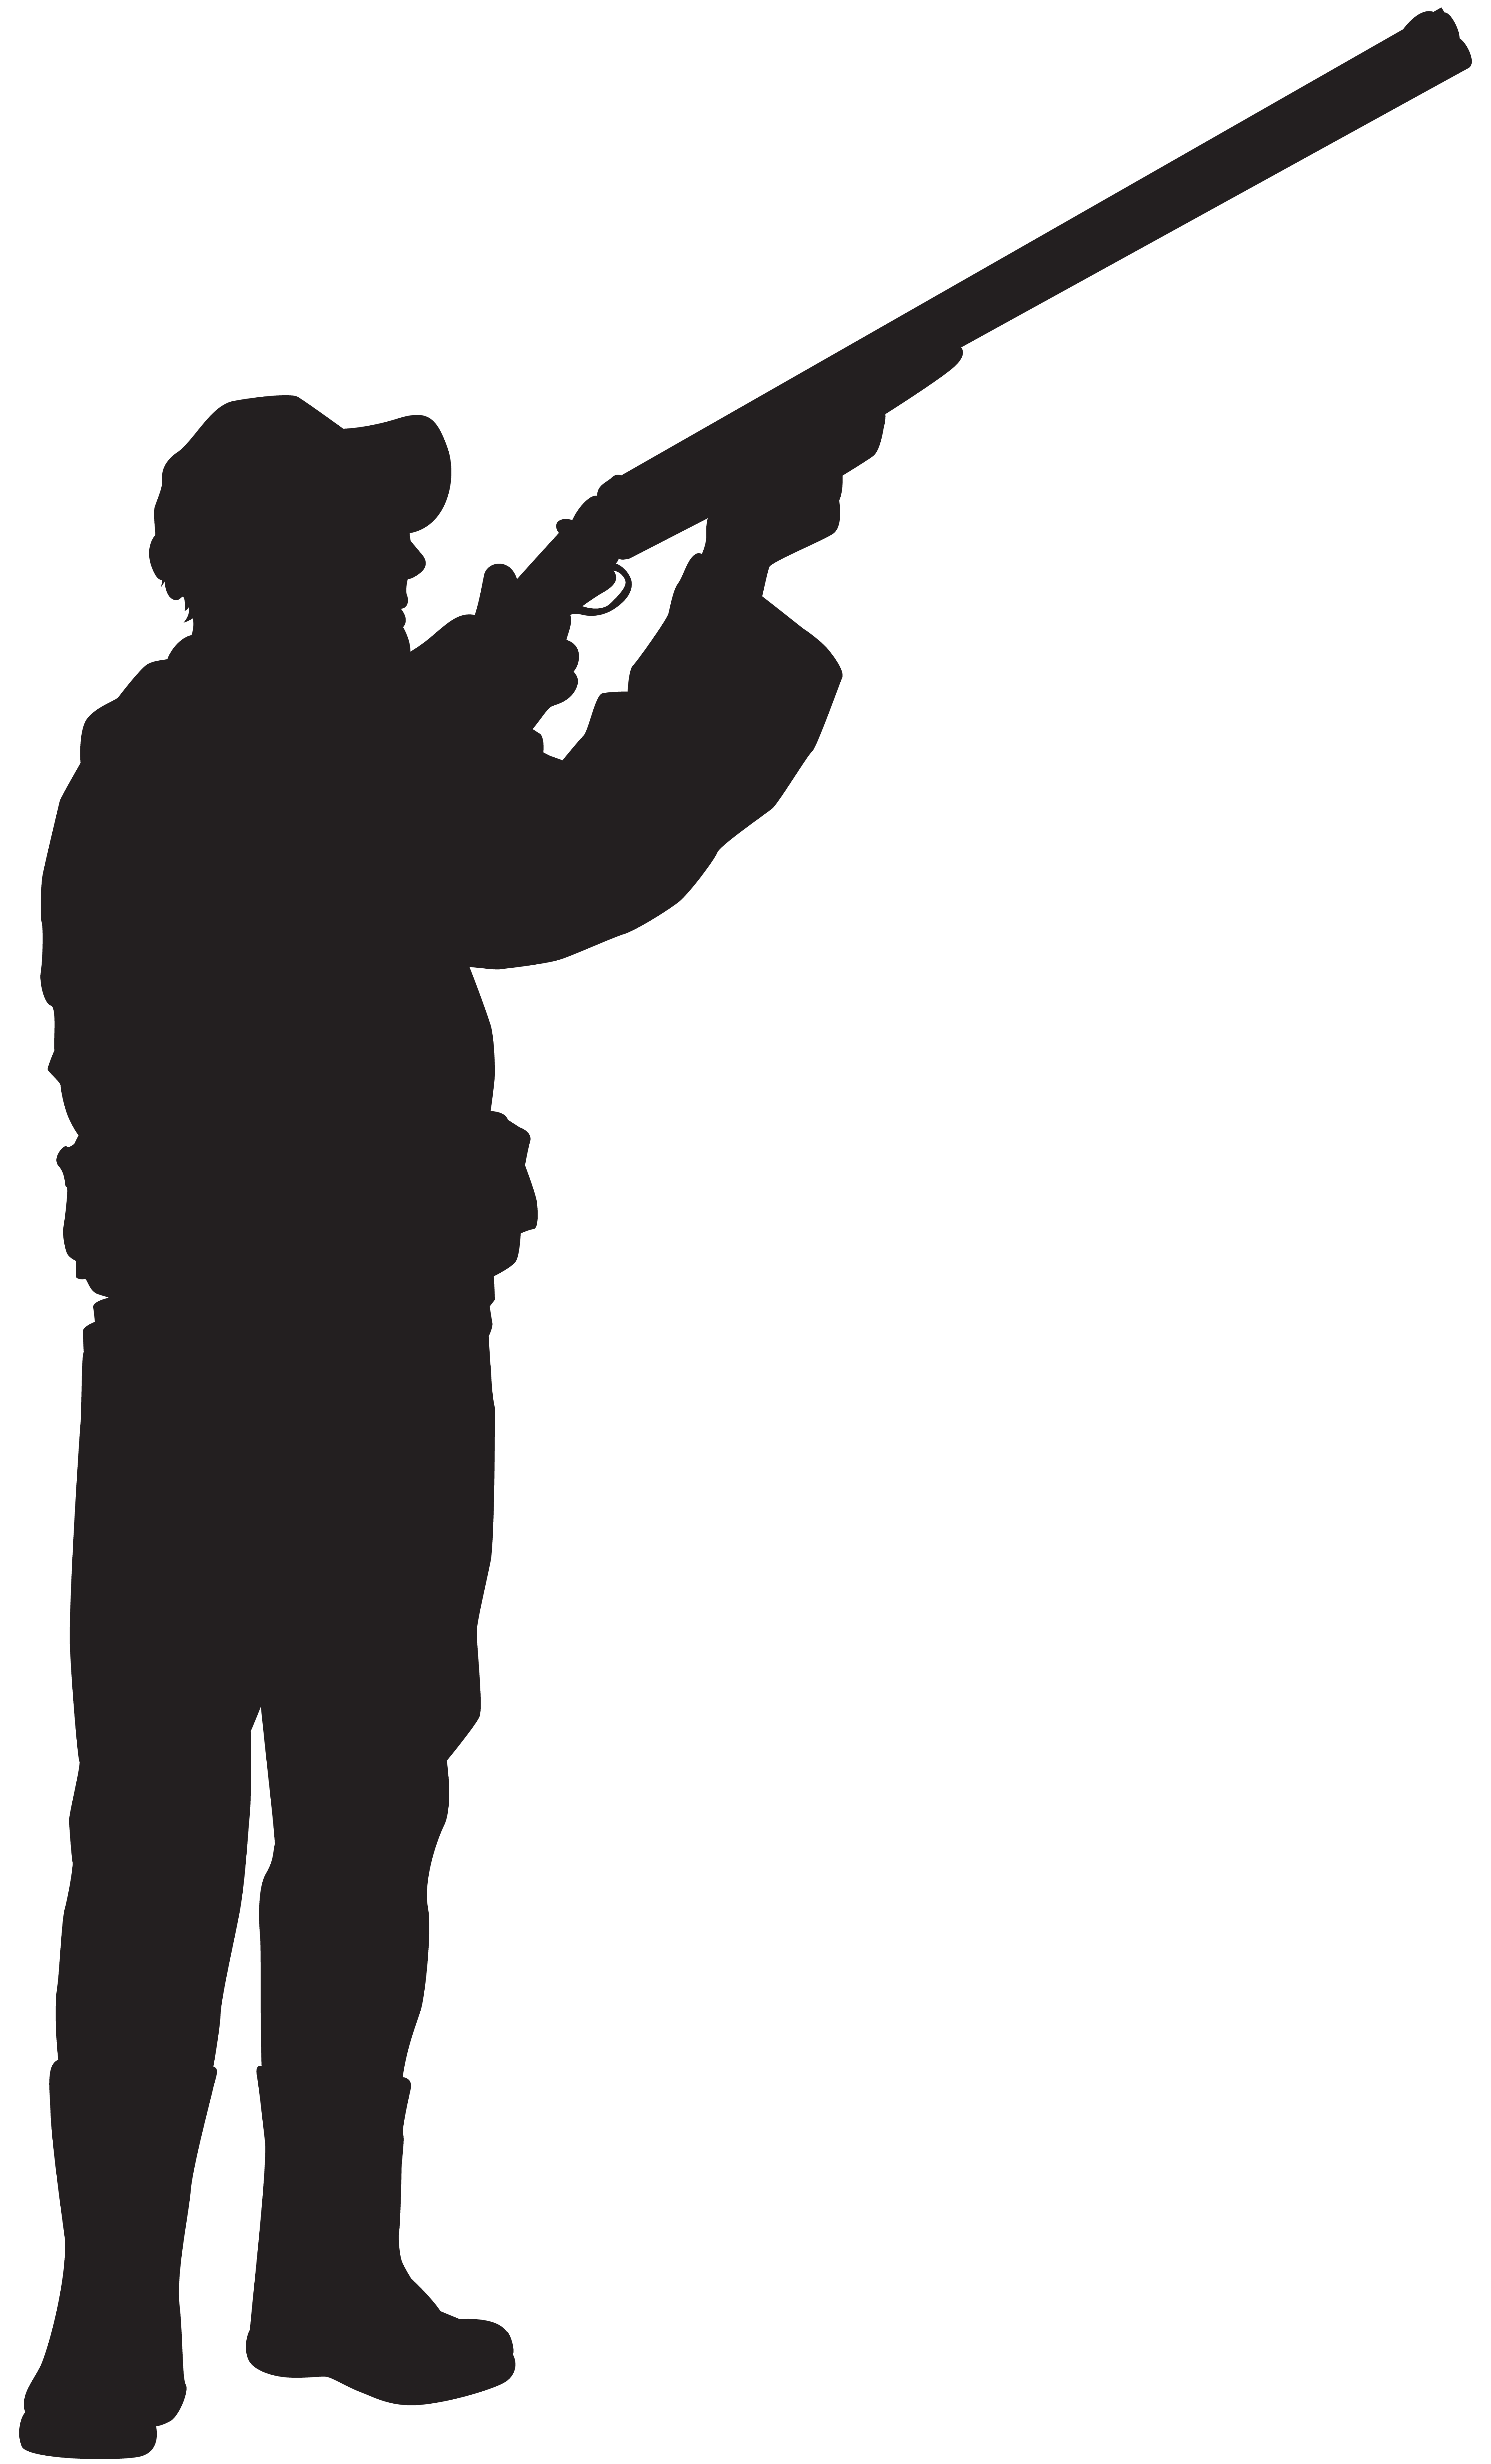 Free hunter clipart jpg download Hunter Silhouette PNG Clip Art Image | Gallery Yopriceville - High ... jpg download